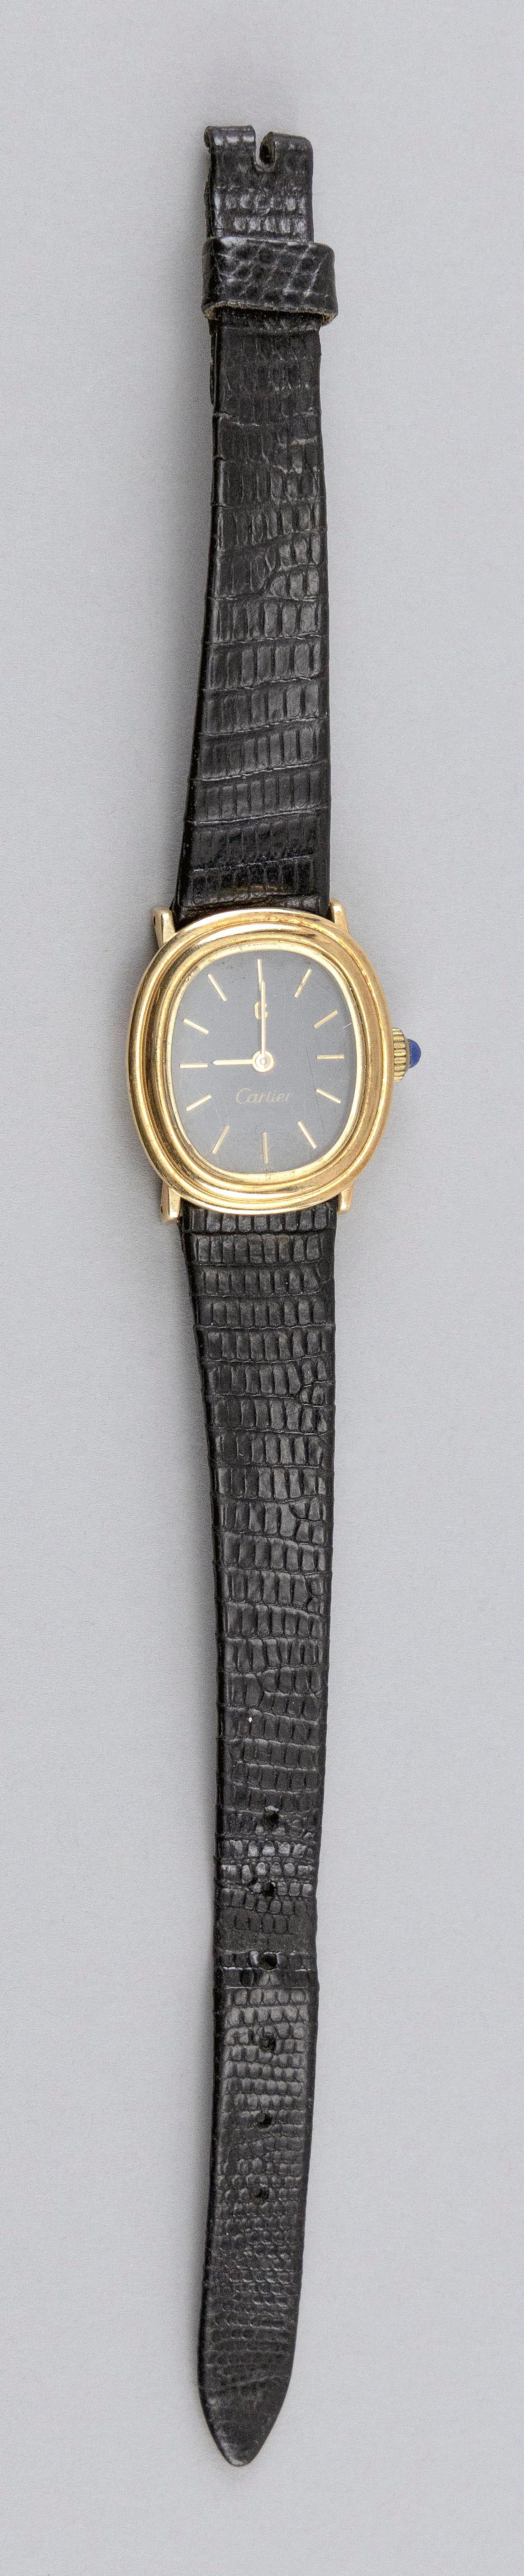 """VINTAGE CARTIER 14KT GOLD LADY'S WRIST WATCH Case numbered 2033453 305409. Black dial with sticks and a """"C"""" at twelve o'clock. Ovoid."""